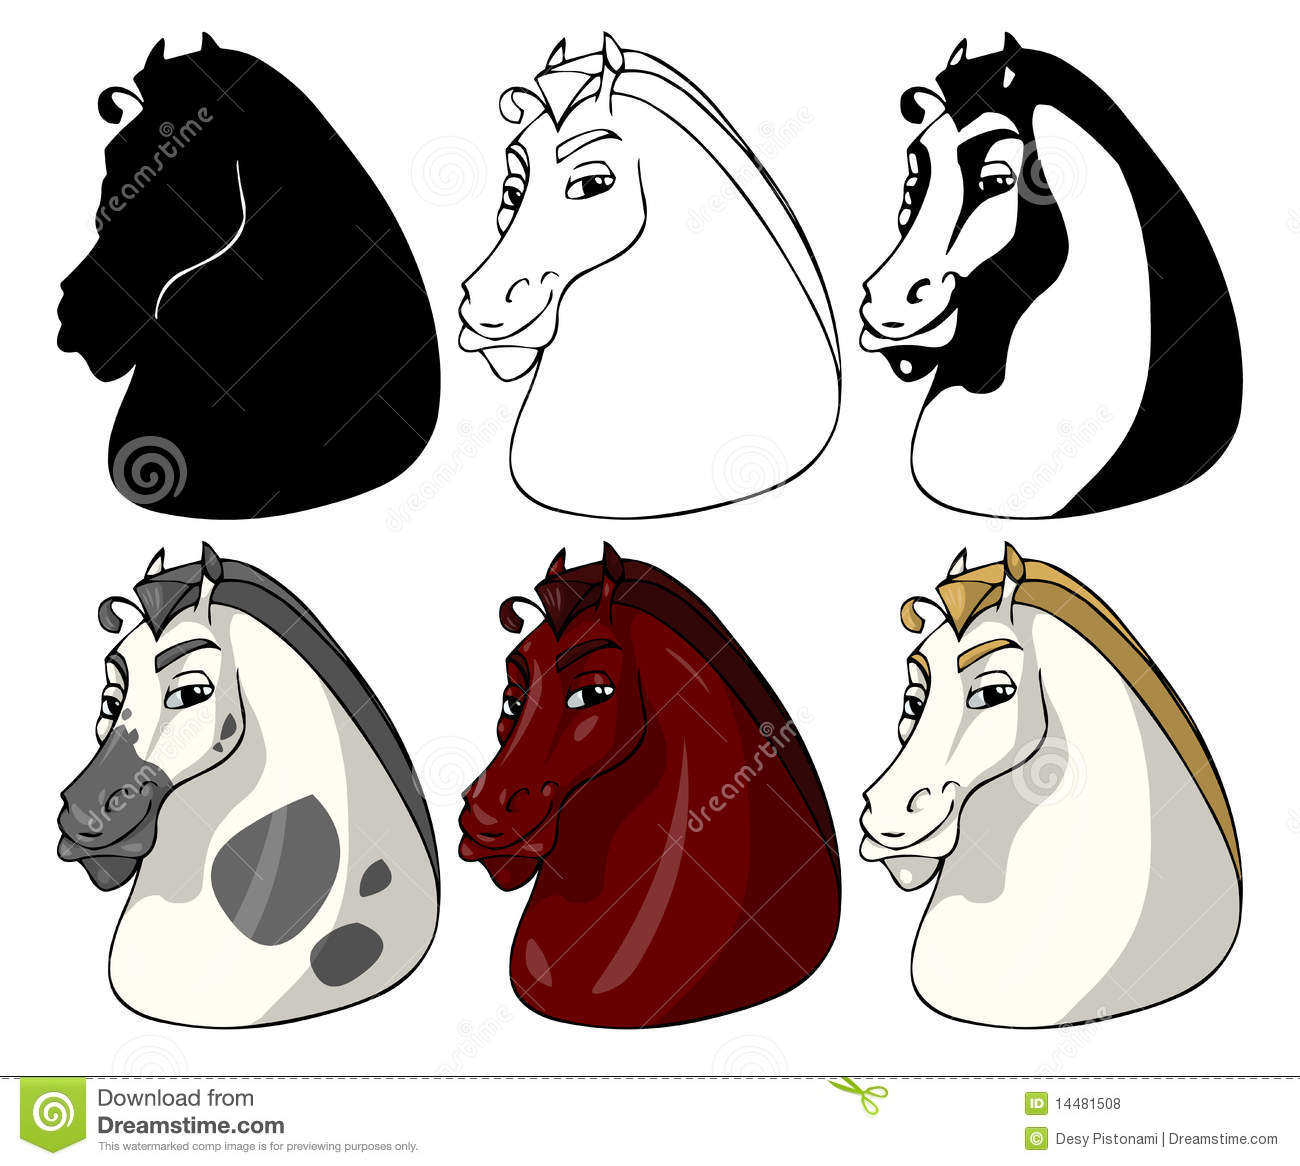 horse faces royalty free stock photos   image 14481508